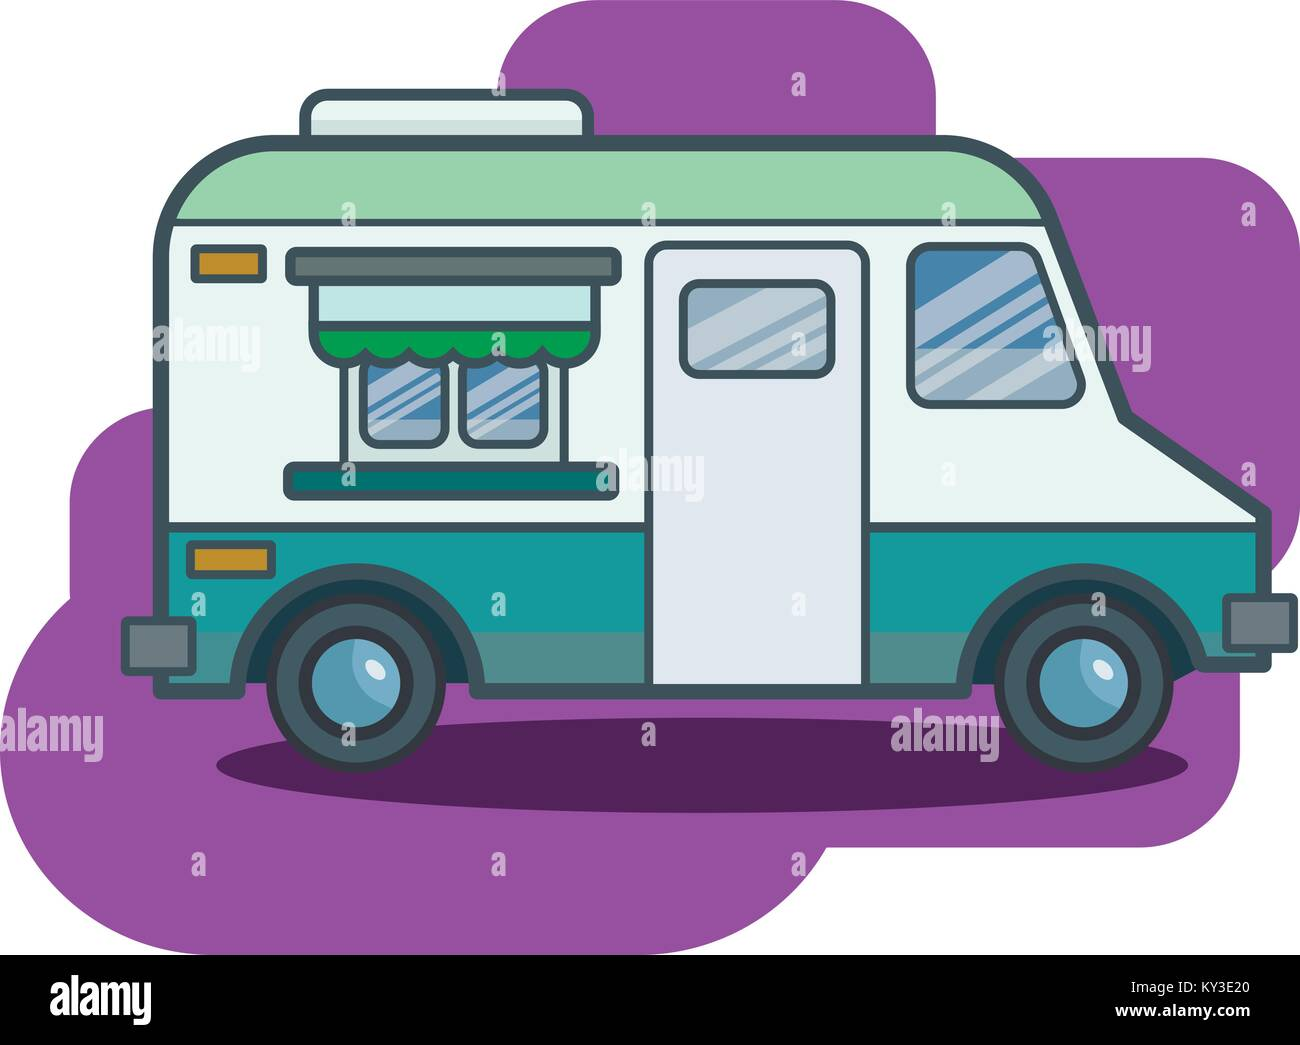 Cute Retro Food Truck Illustration In Flat Cartoon Vector Style